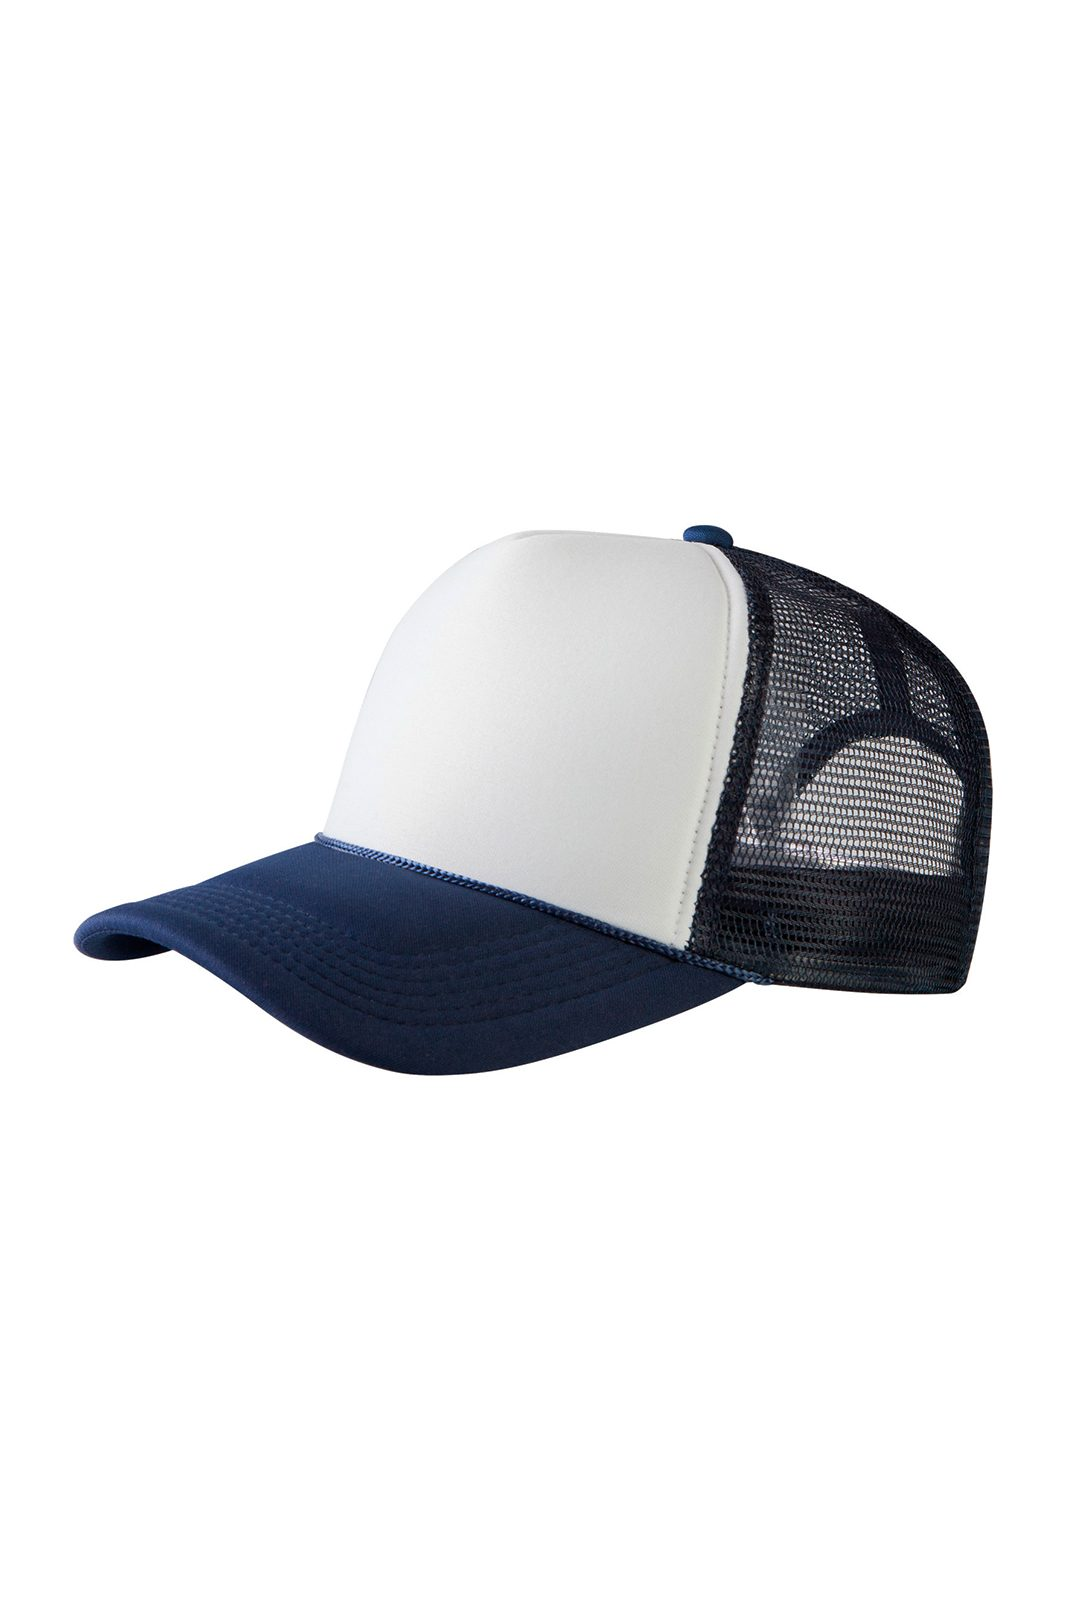 Baseball Cap Trucker High Profile Navy/White